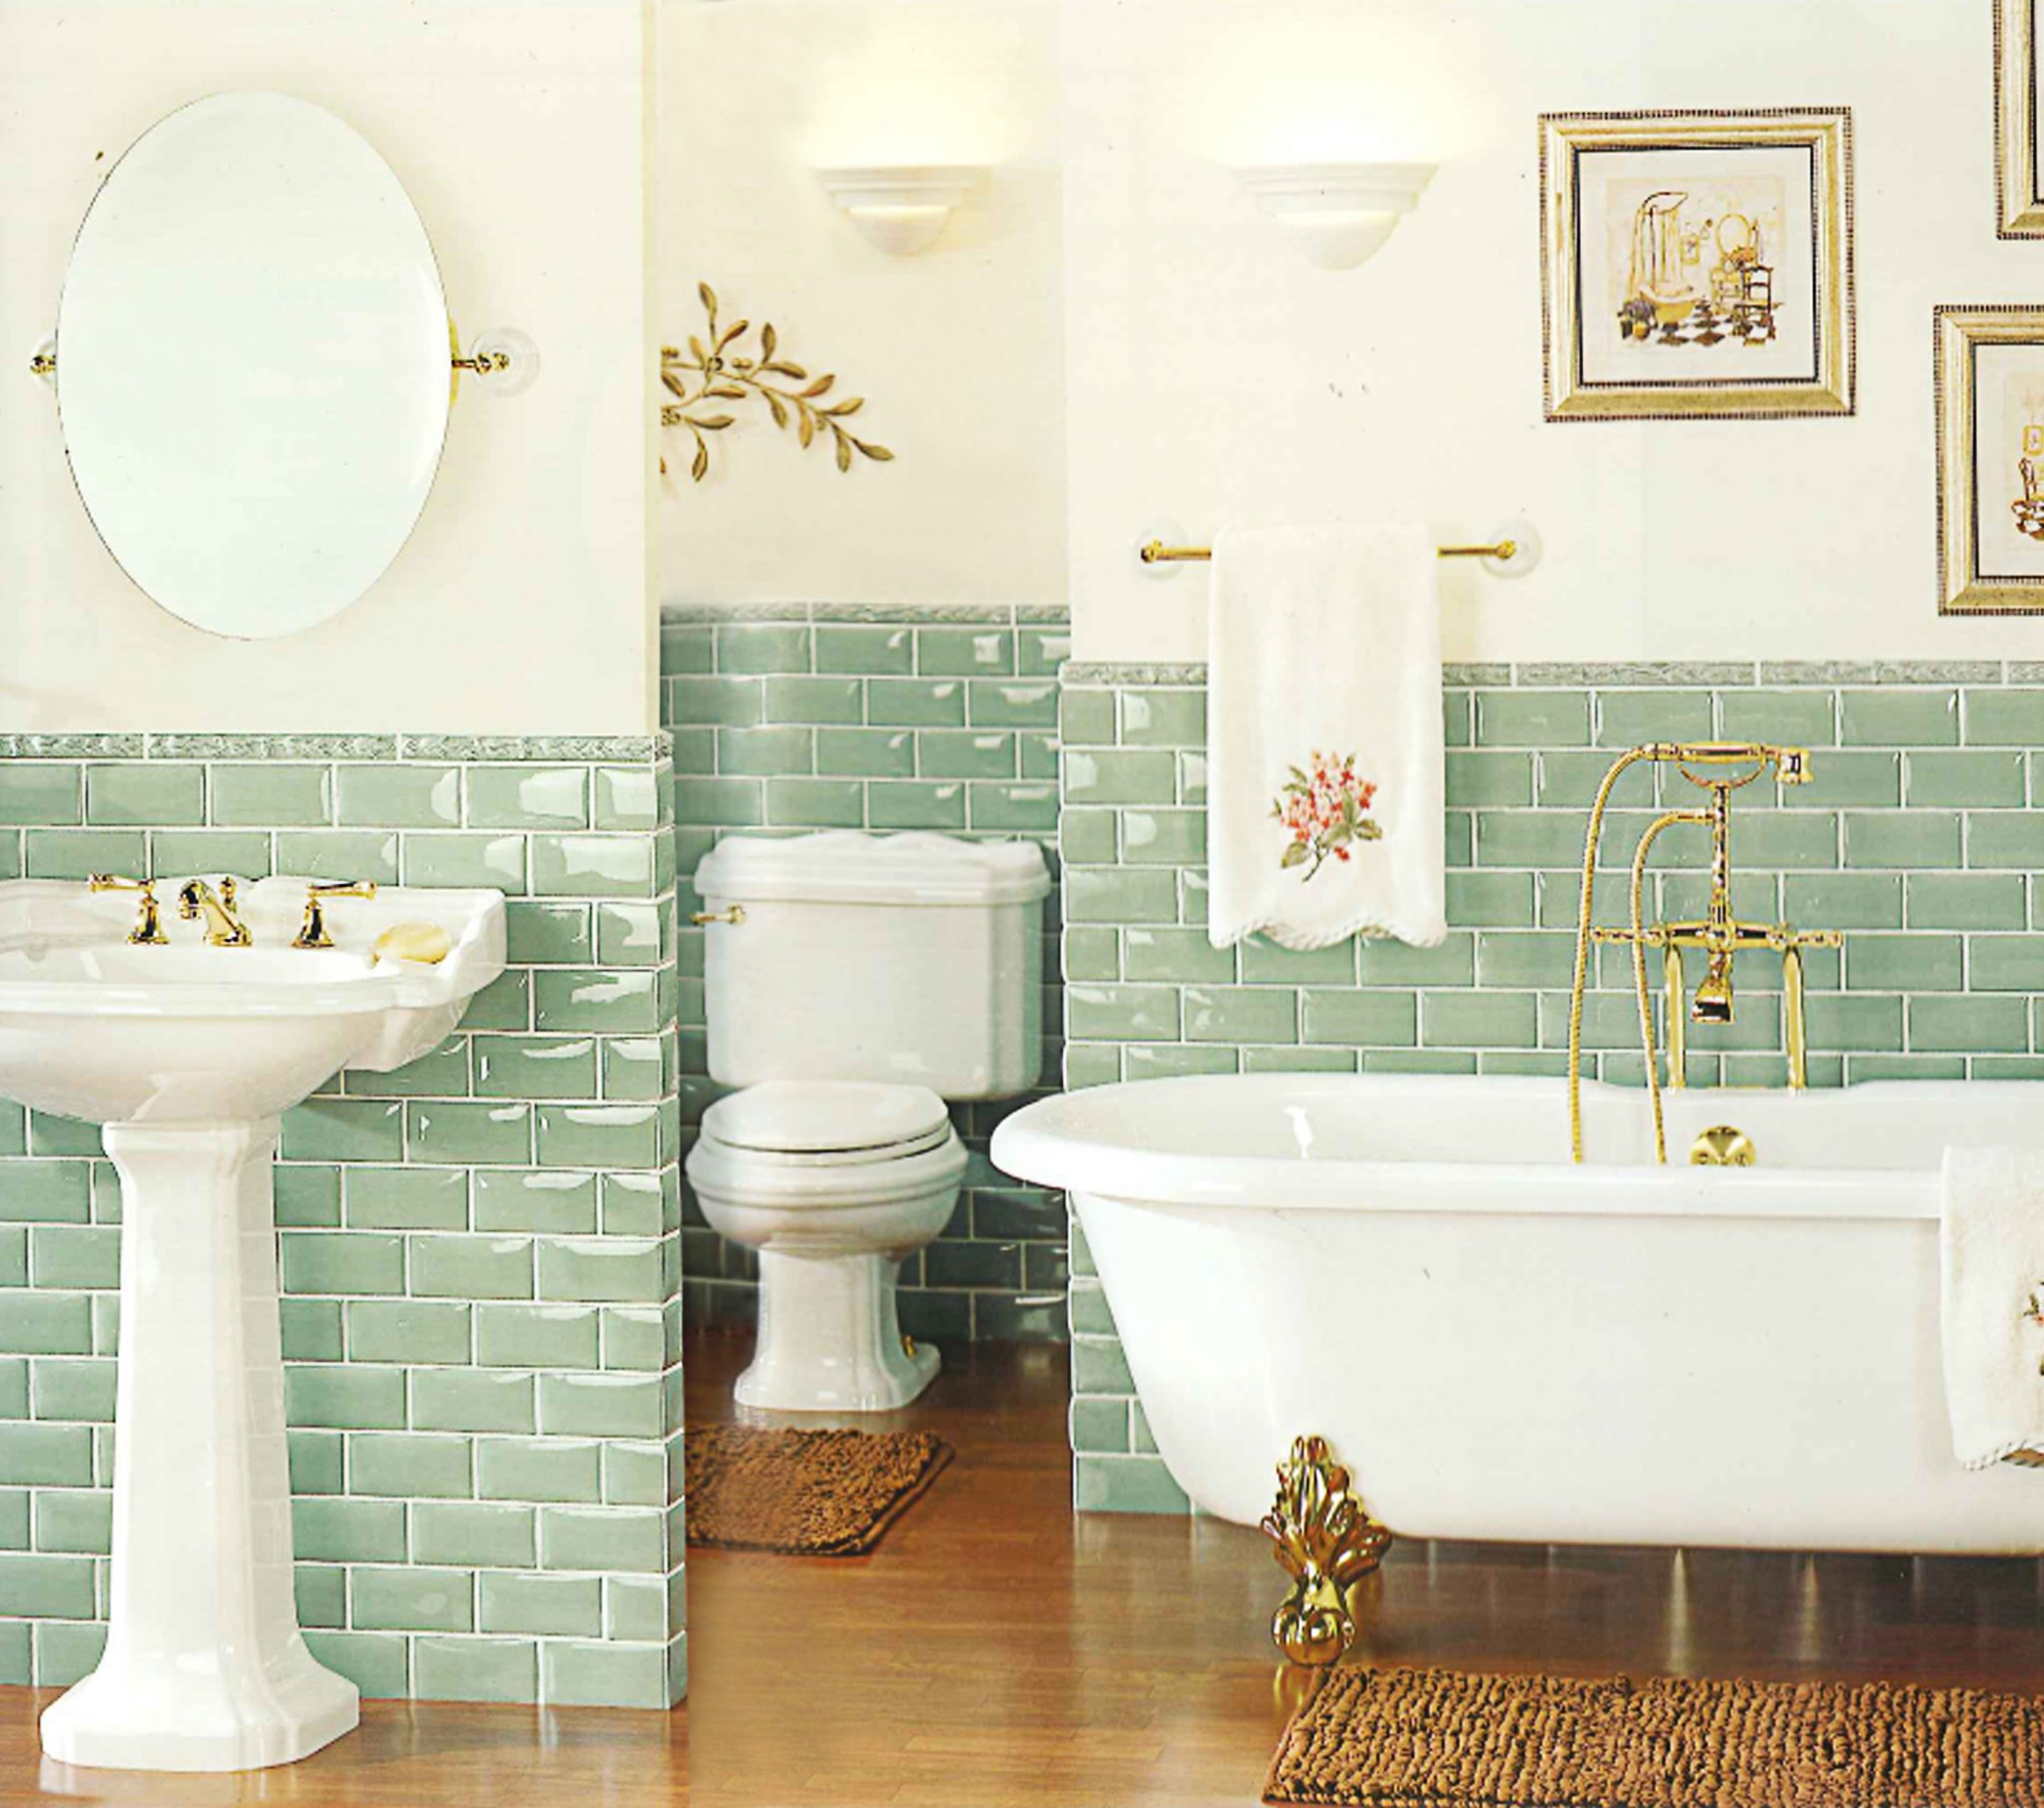 Richmond Tile & Bath buys contents of two high-end European ...